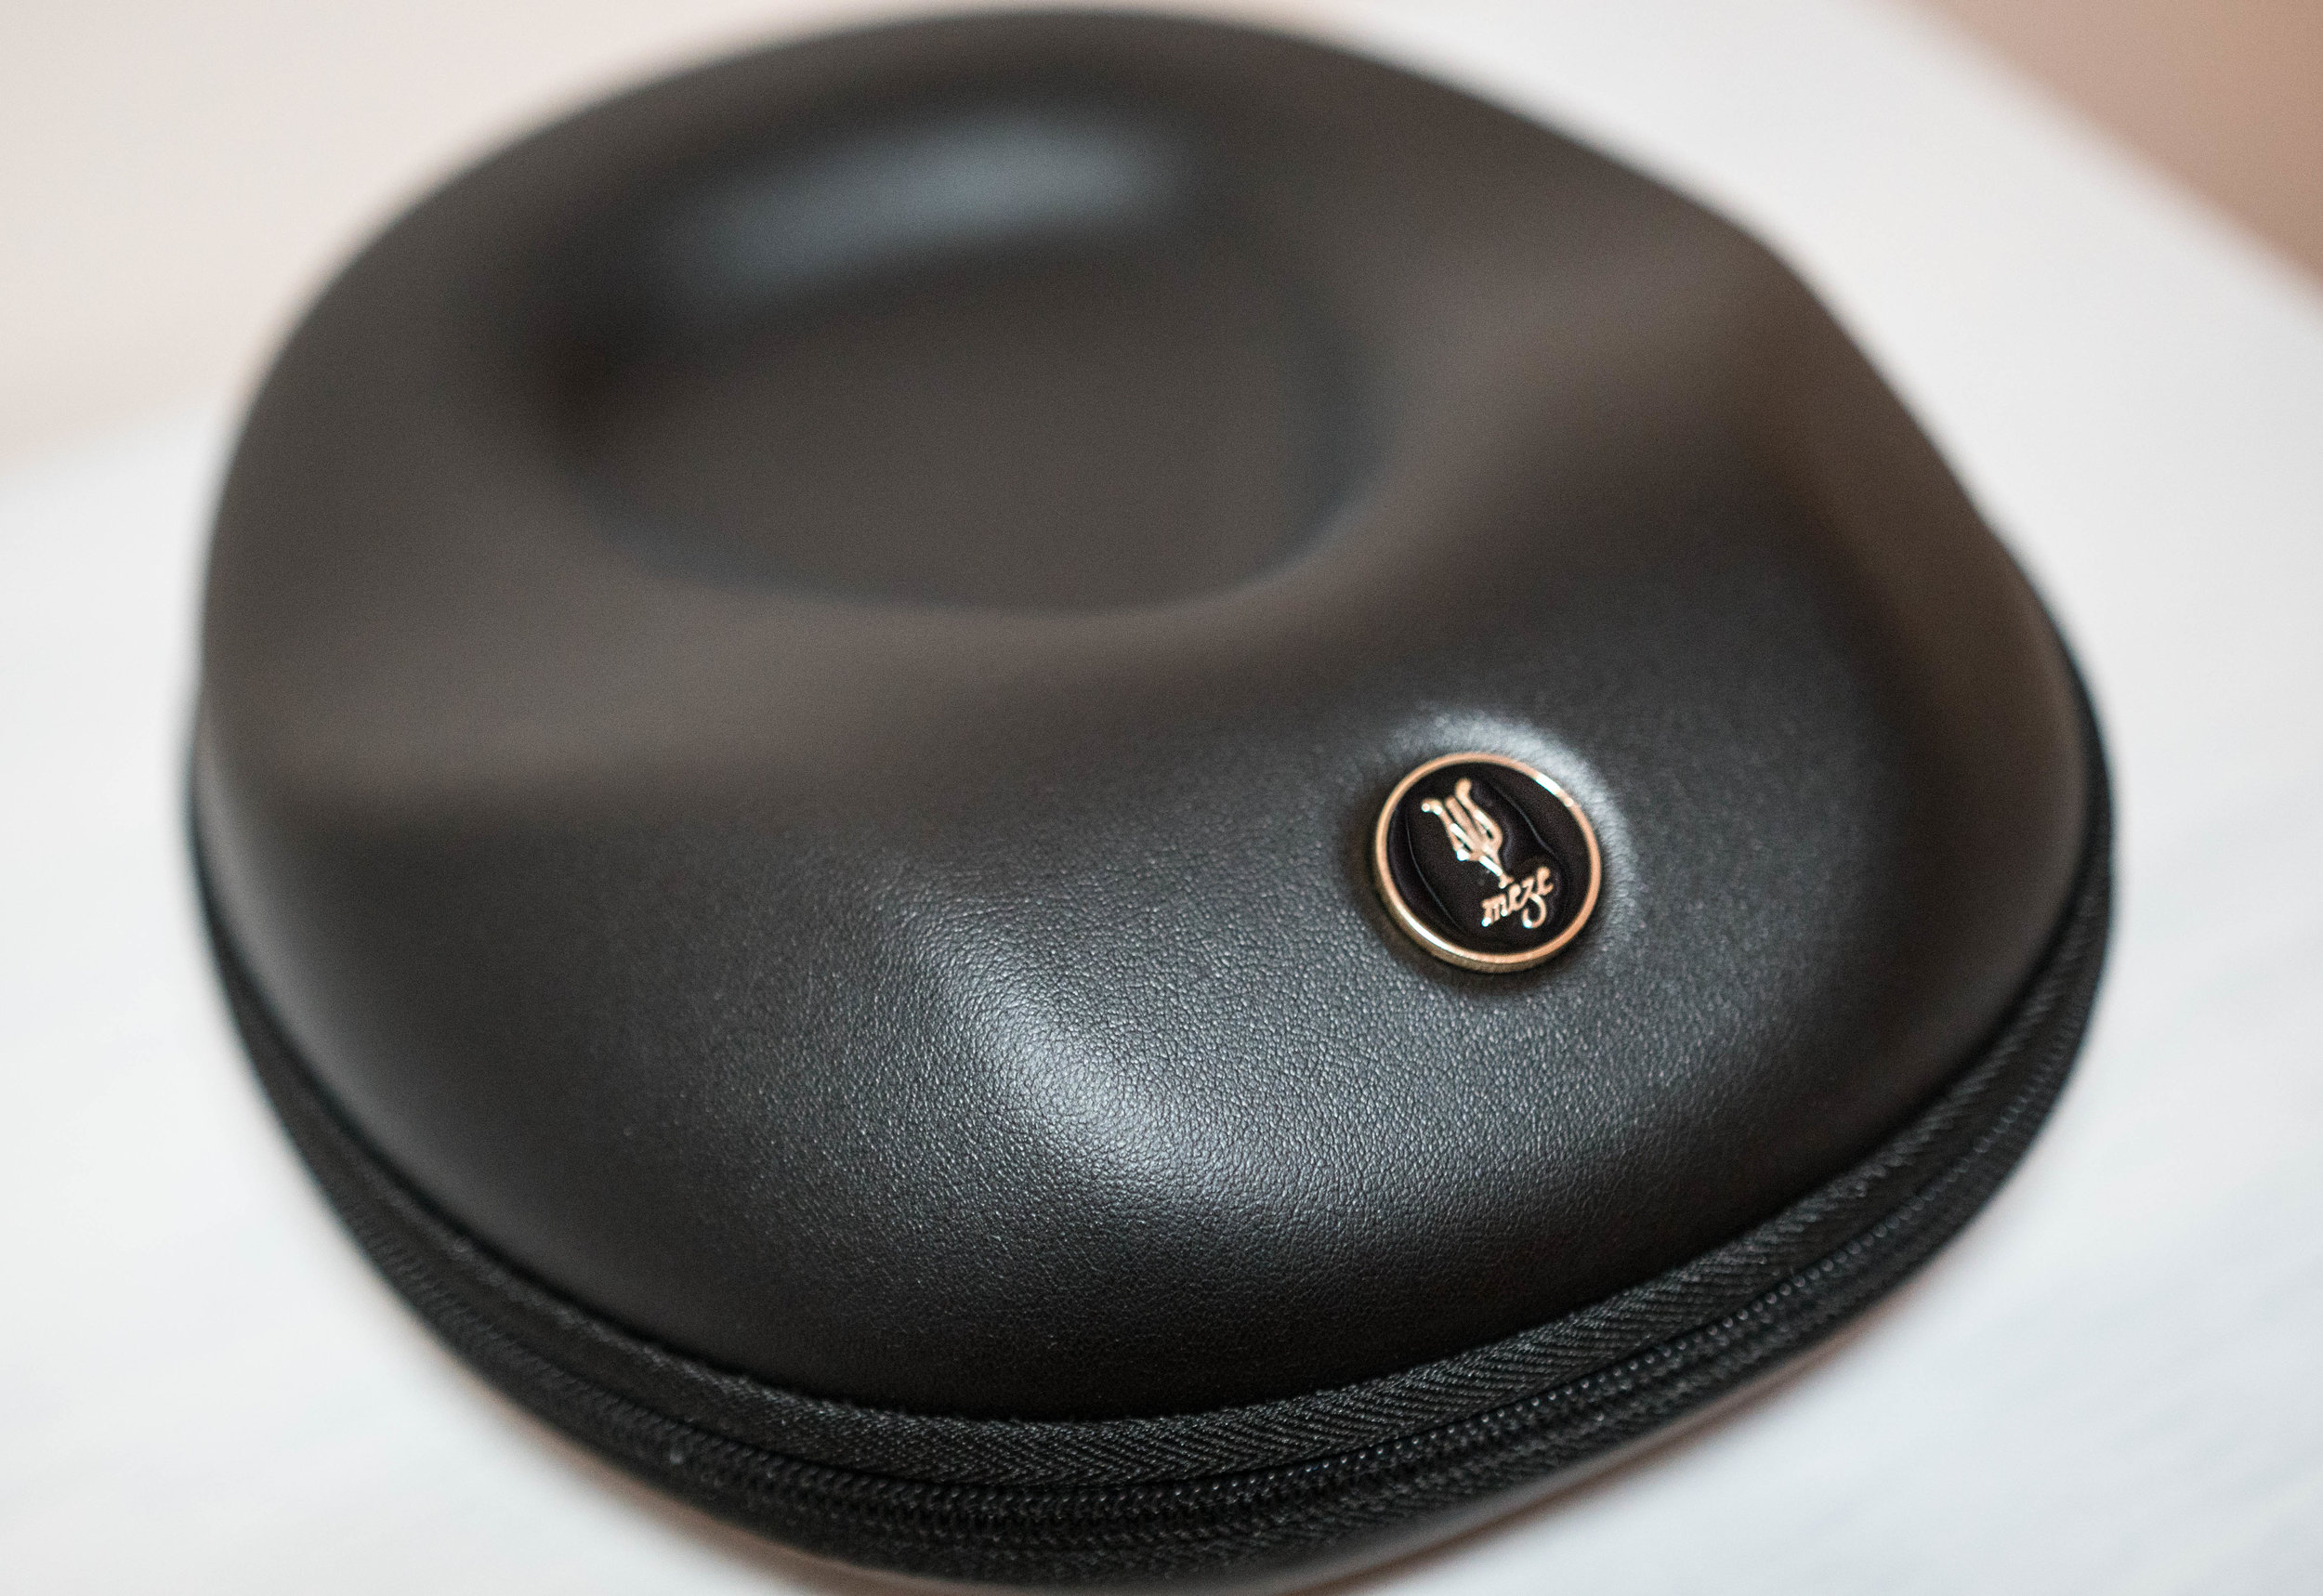 Custom Meze 99 headphone case.